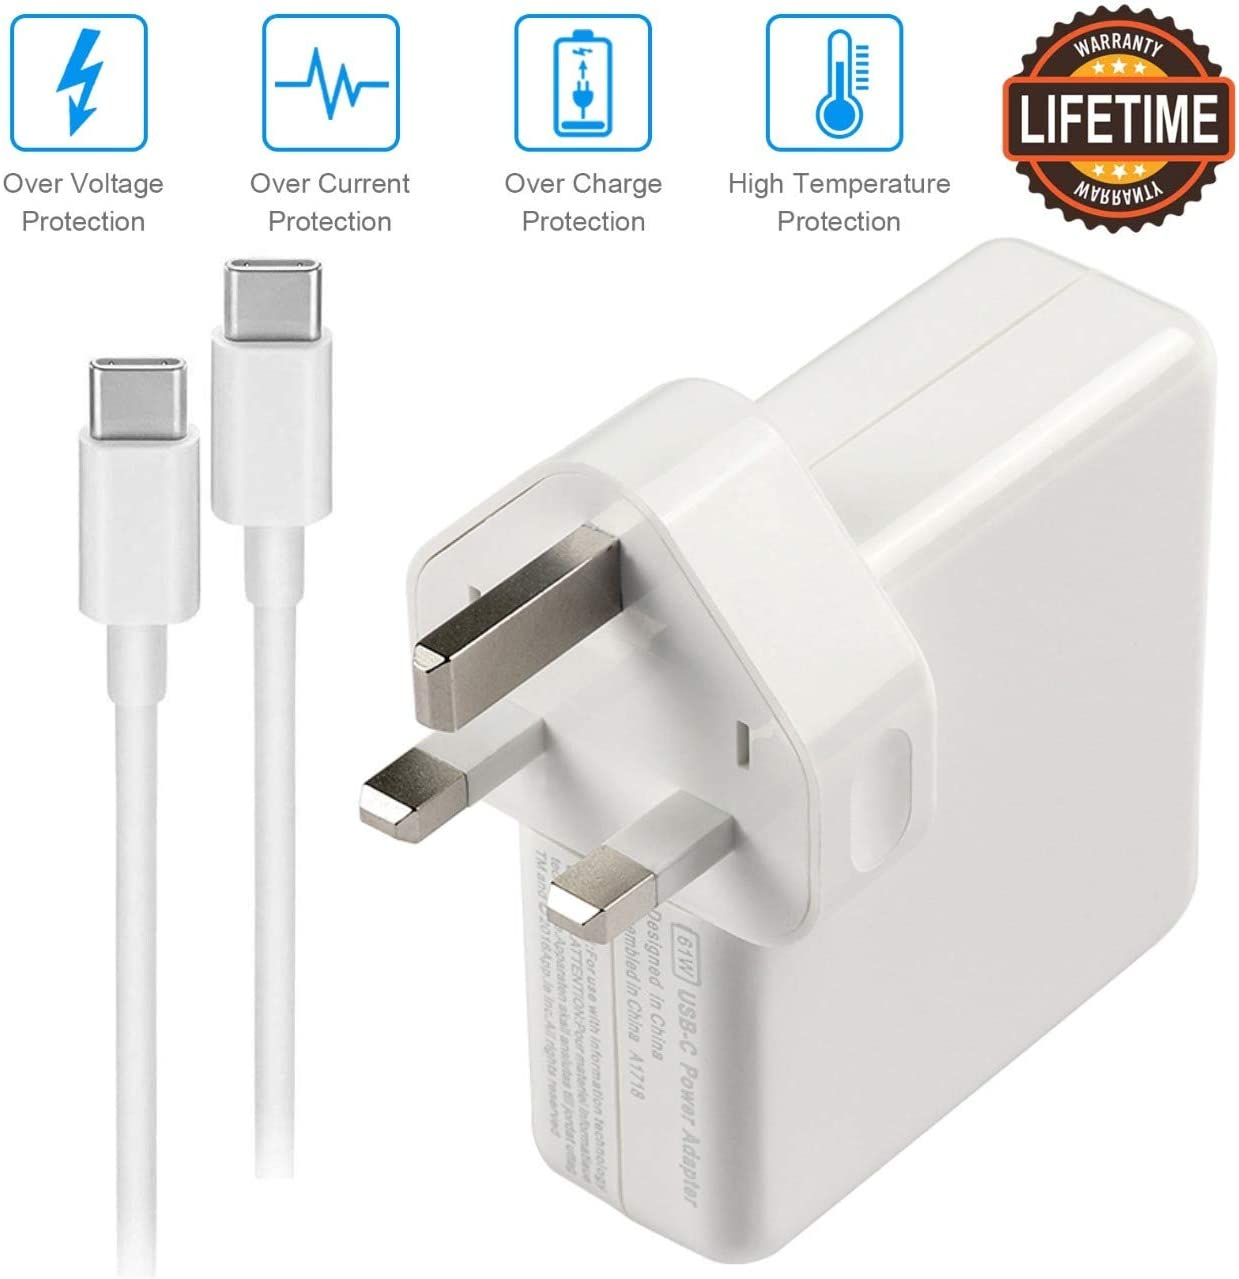 87W USB C Charger Compatible with Macbook Pro: Amazon.co